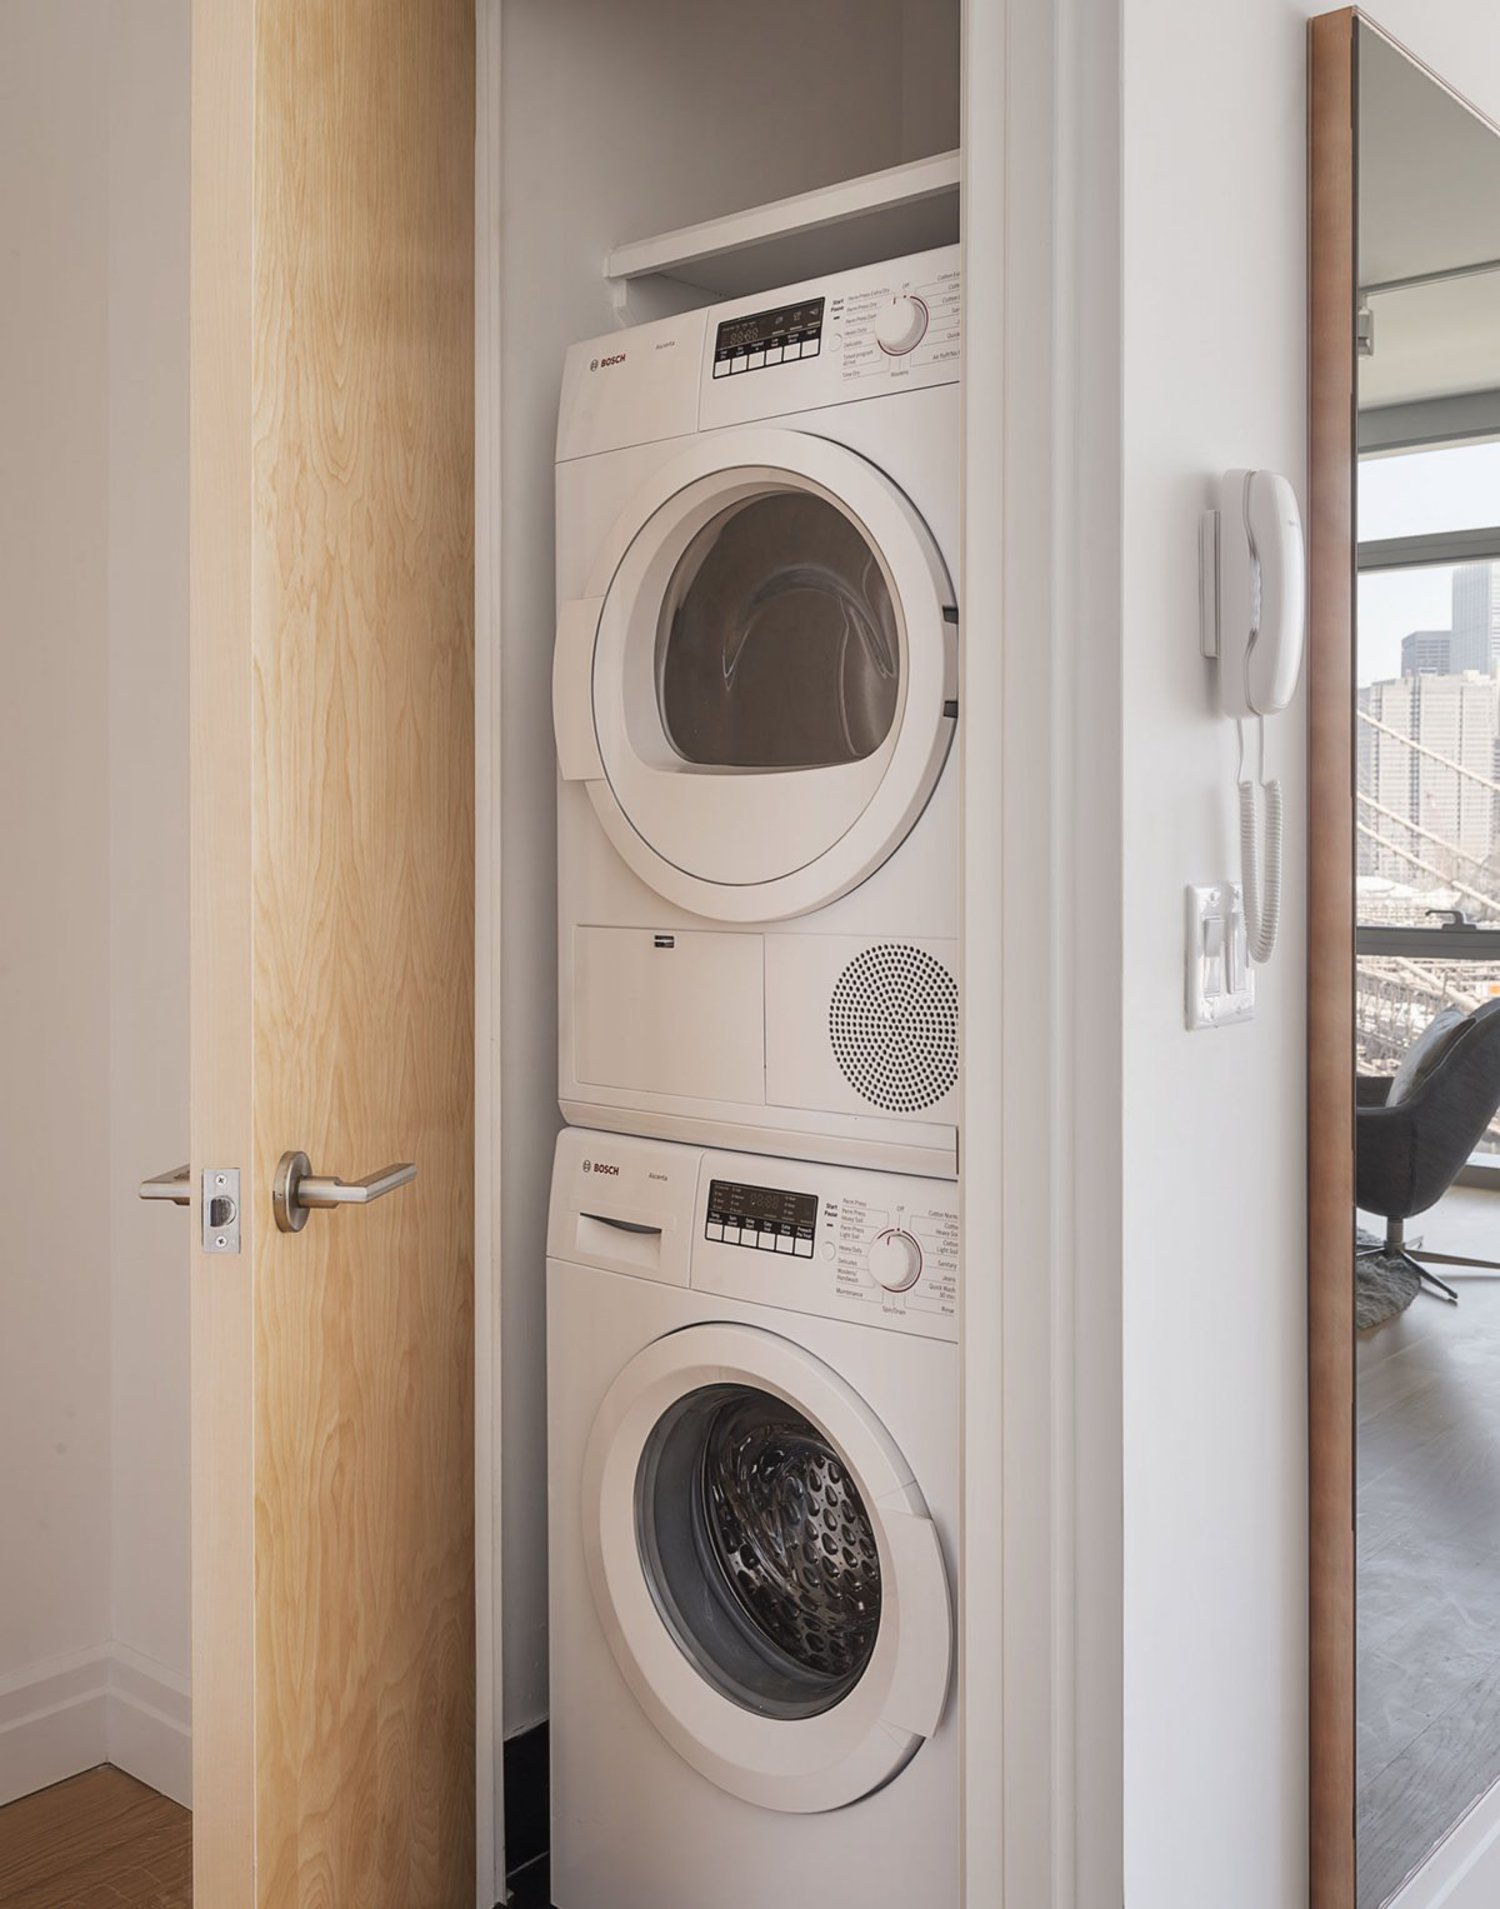 There's even an in-unit washer and dryer — the pinnacle of New York City apartment living.